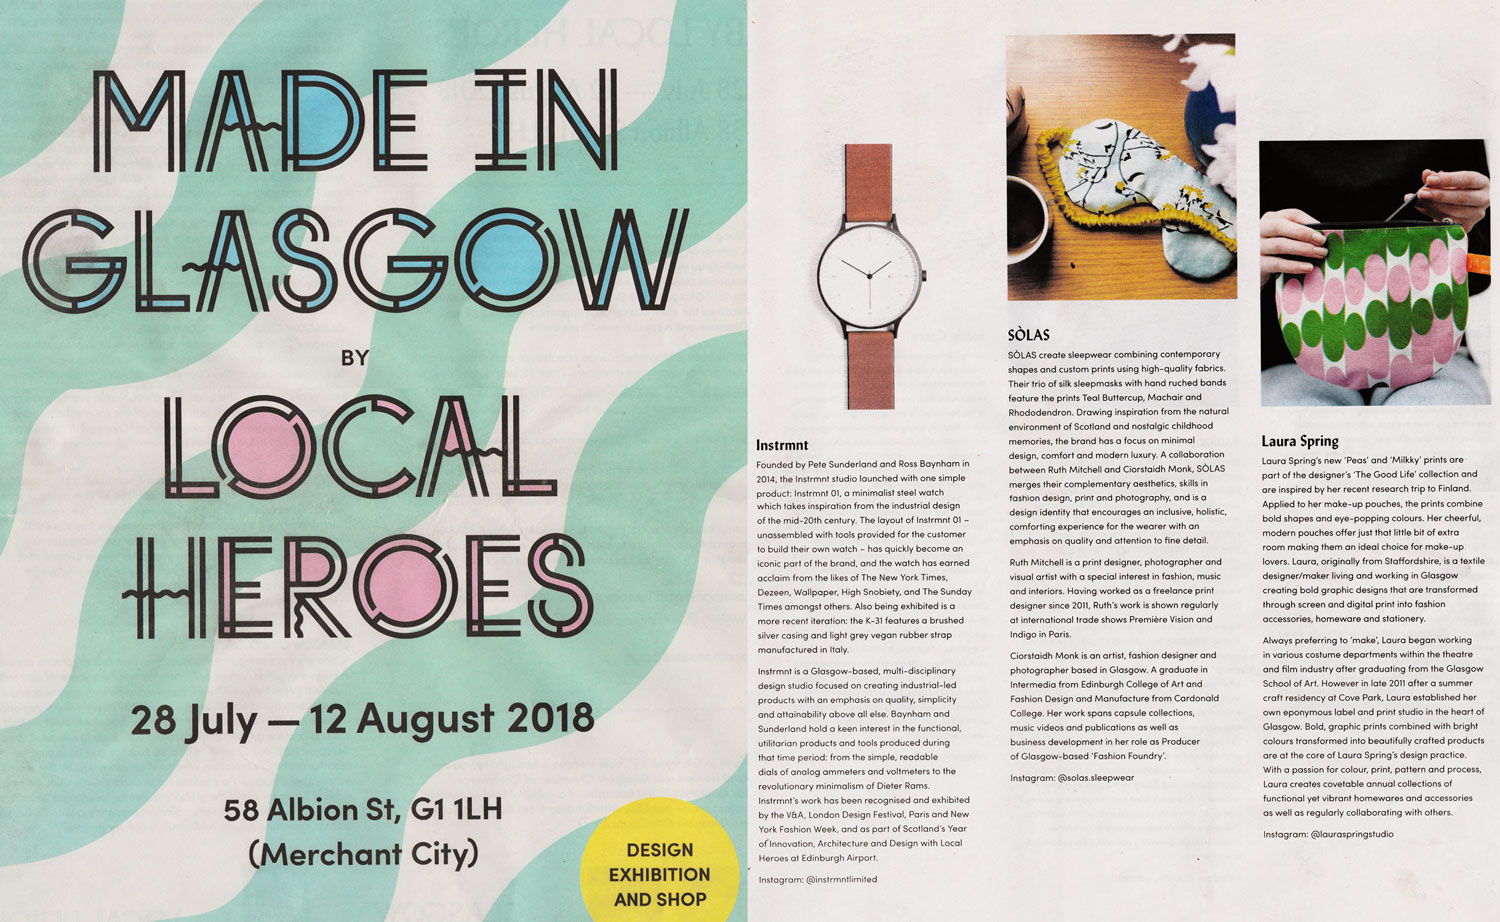 Made in Glasgow by Local Heroes, August 2018